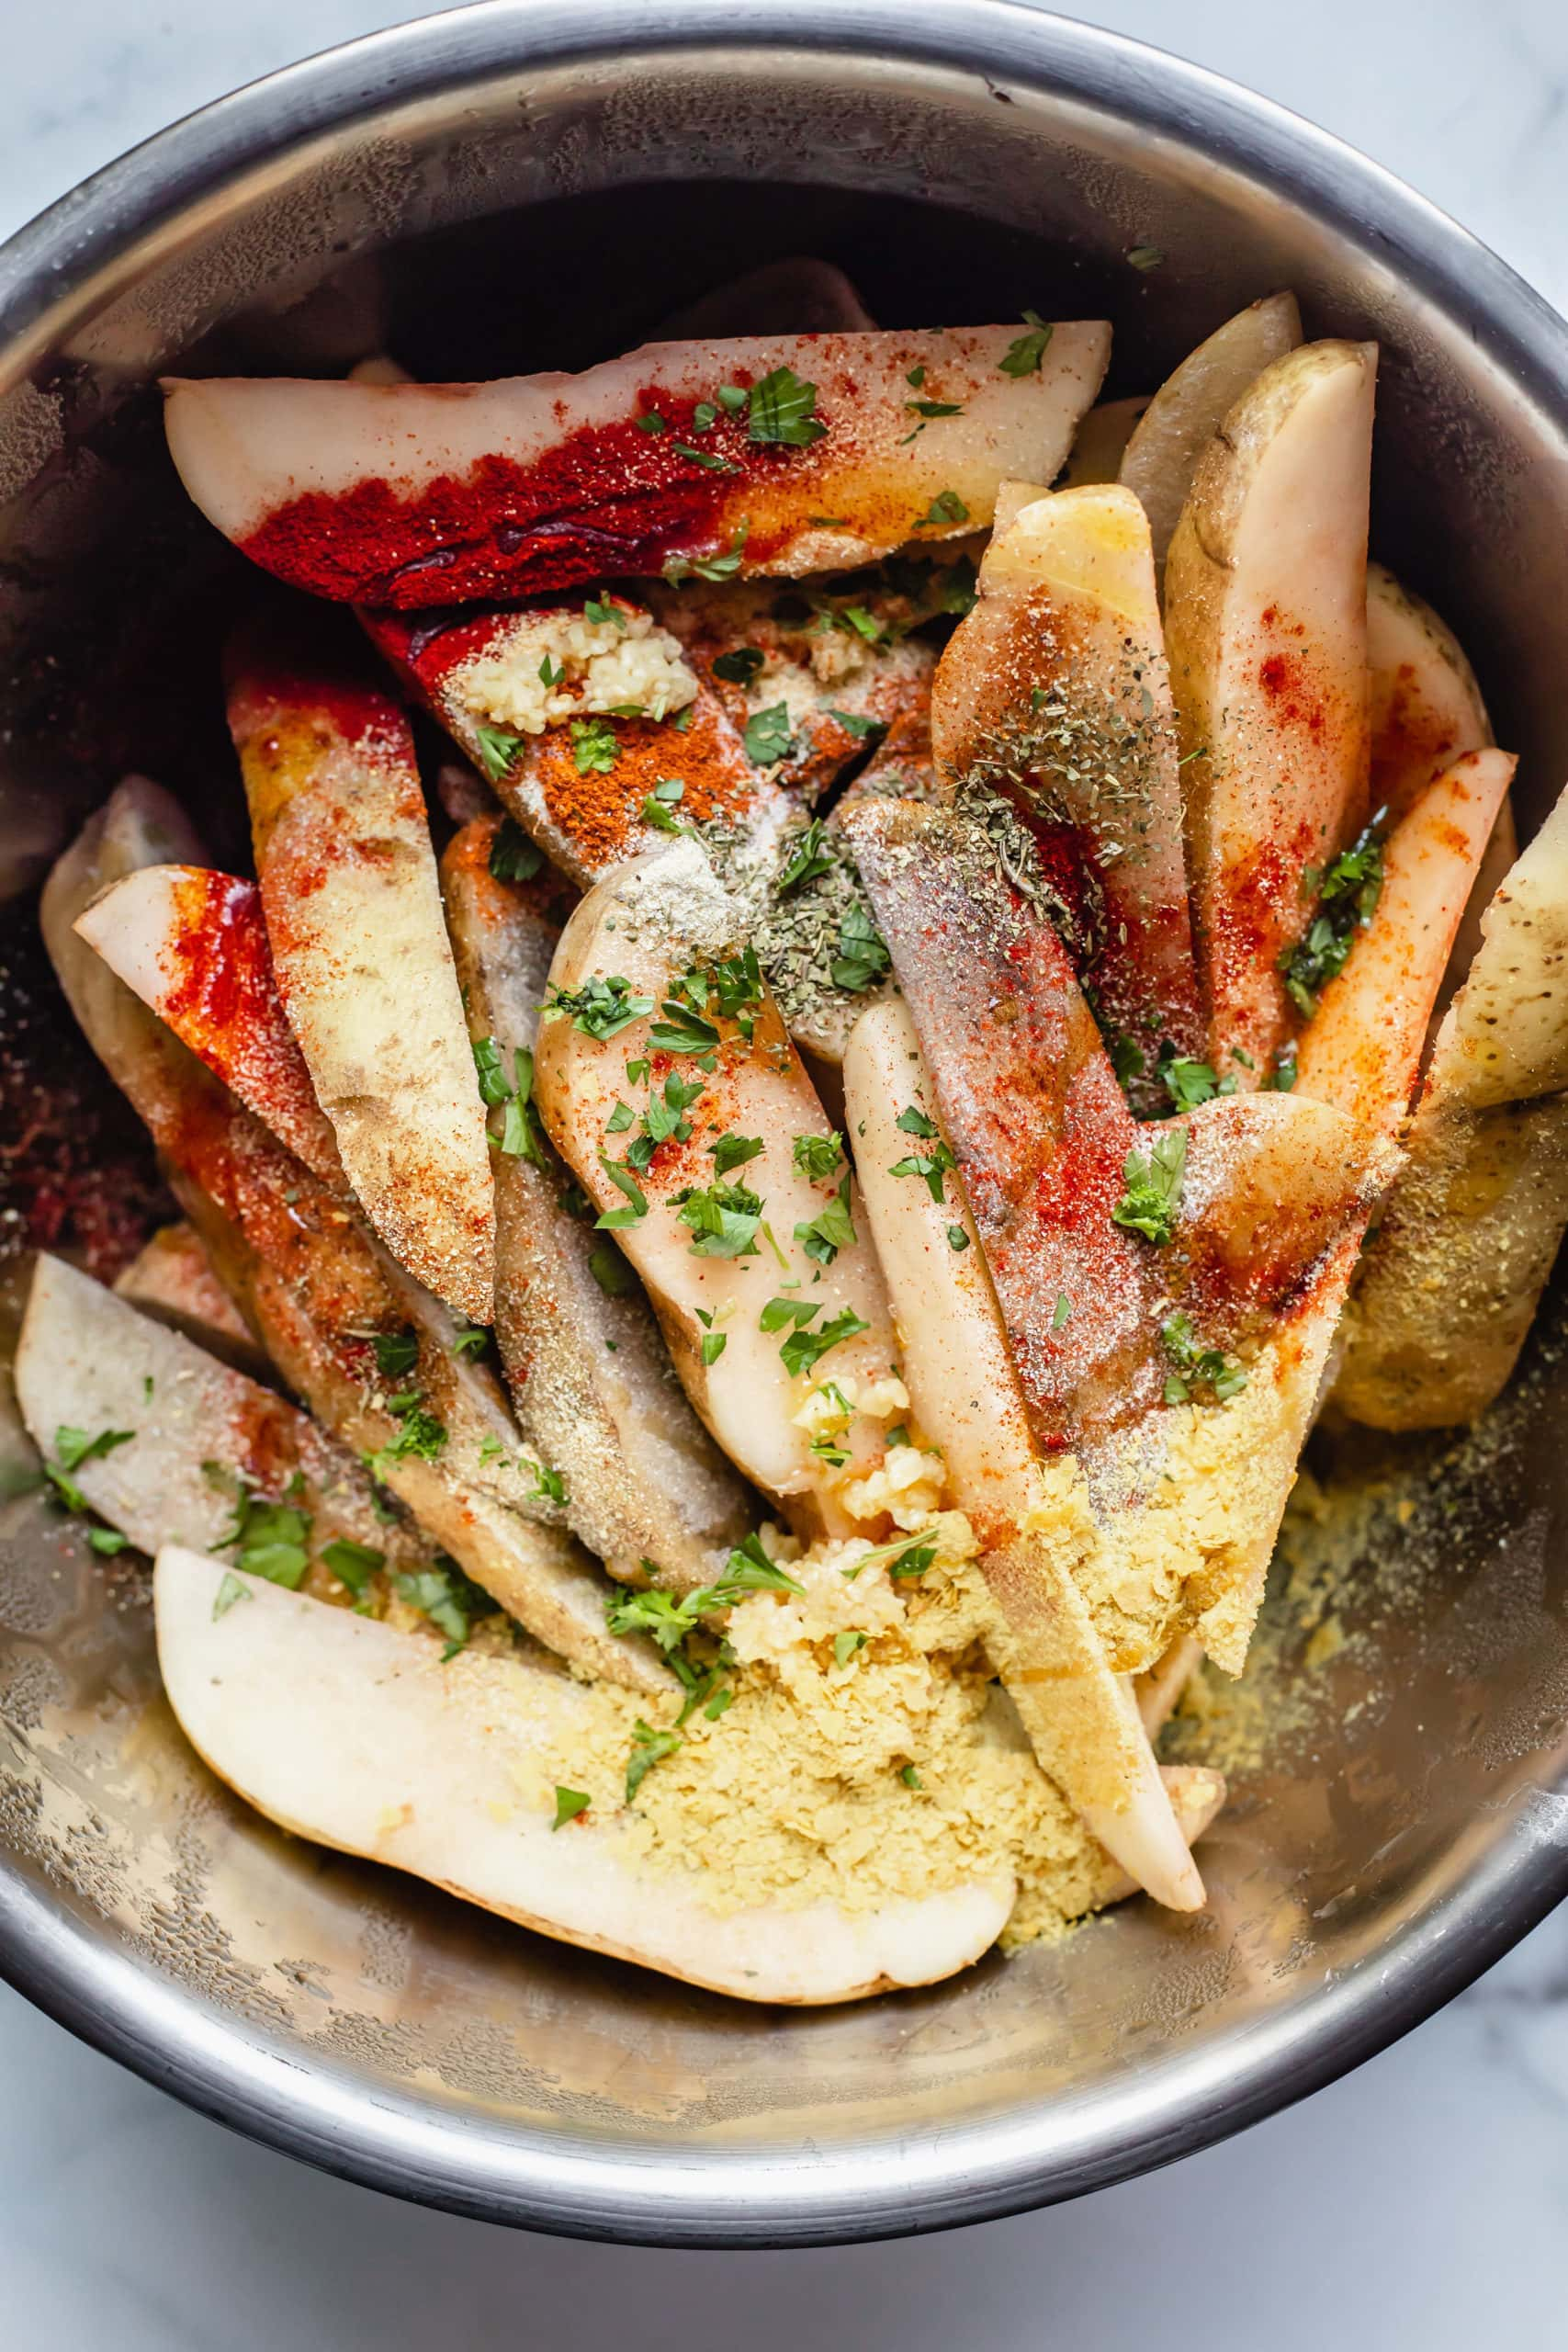 Seasoned potato fries in a mixing bowl